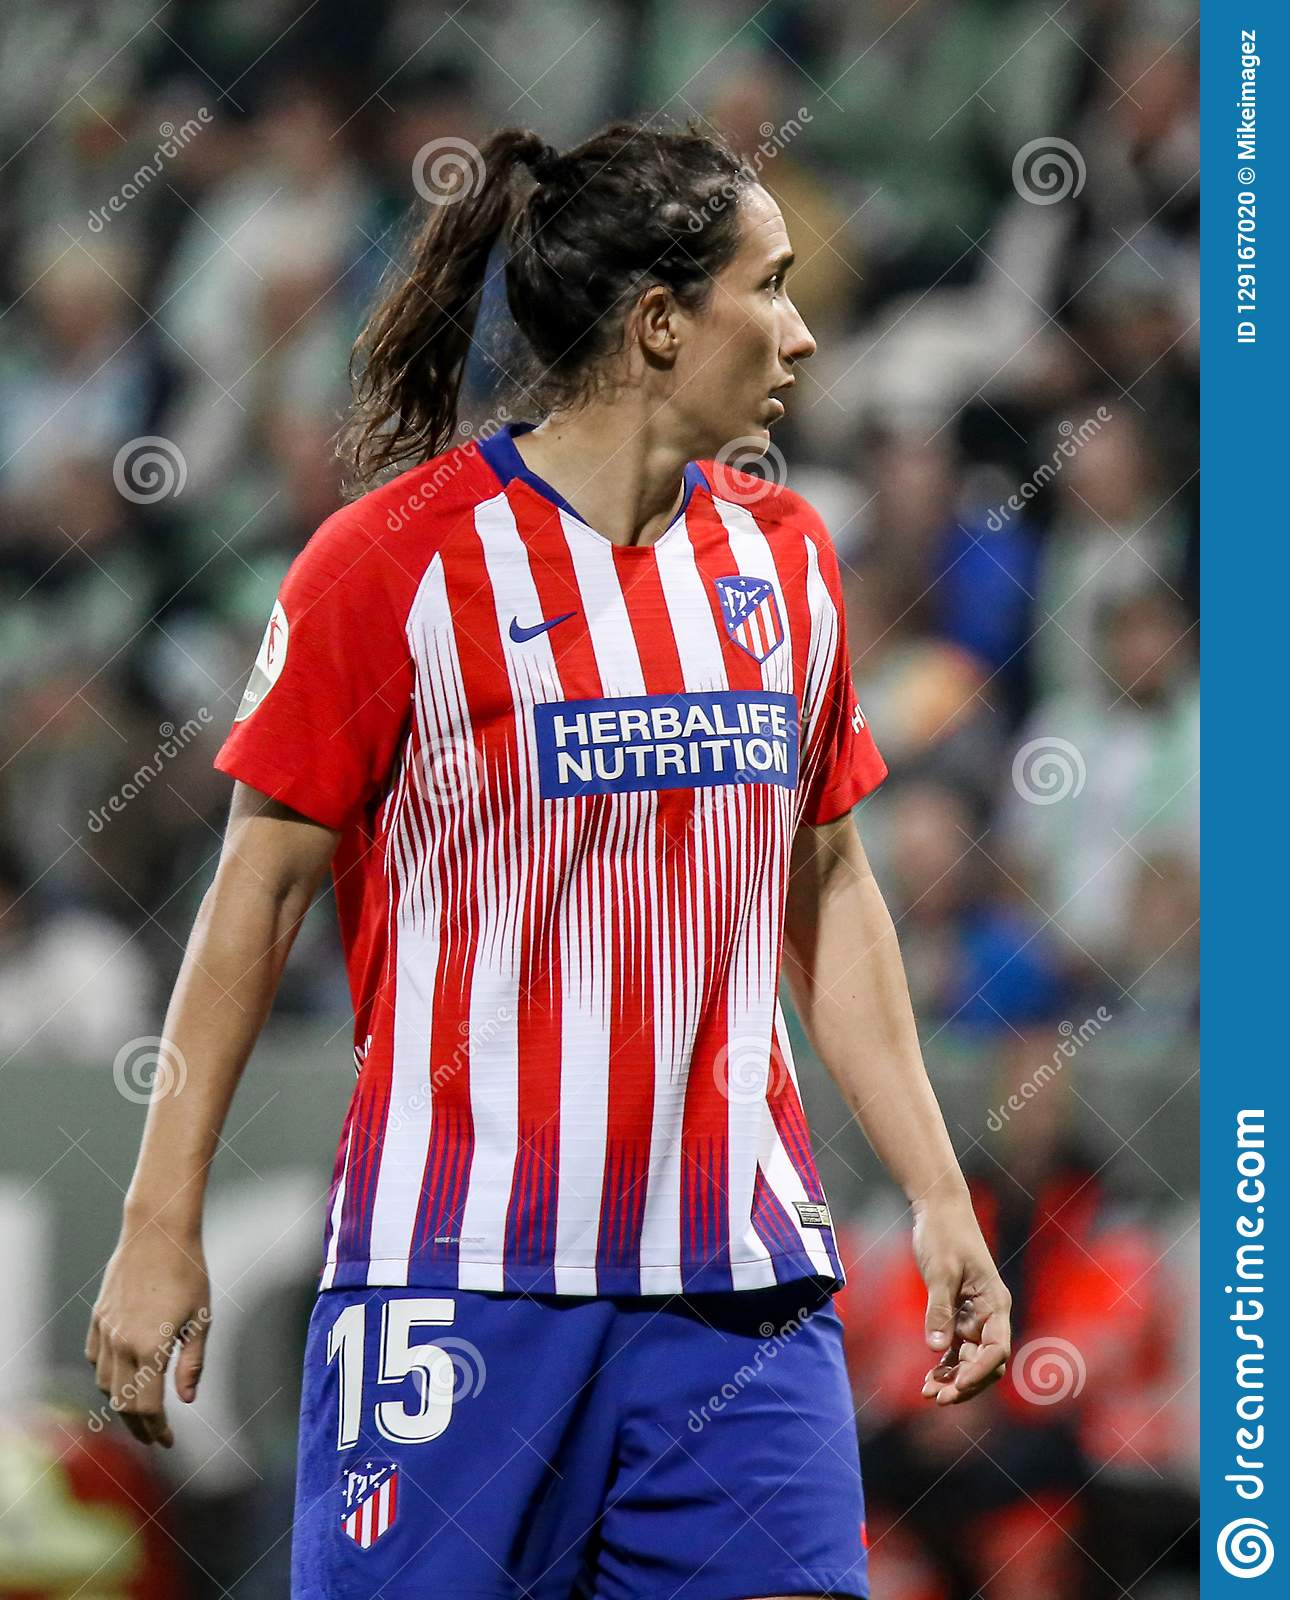 Champions League Womens: Silvia Meseguer Bellido During A UEFA Soccer Match